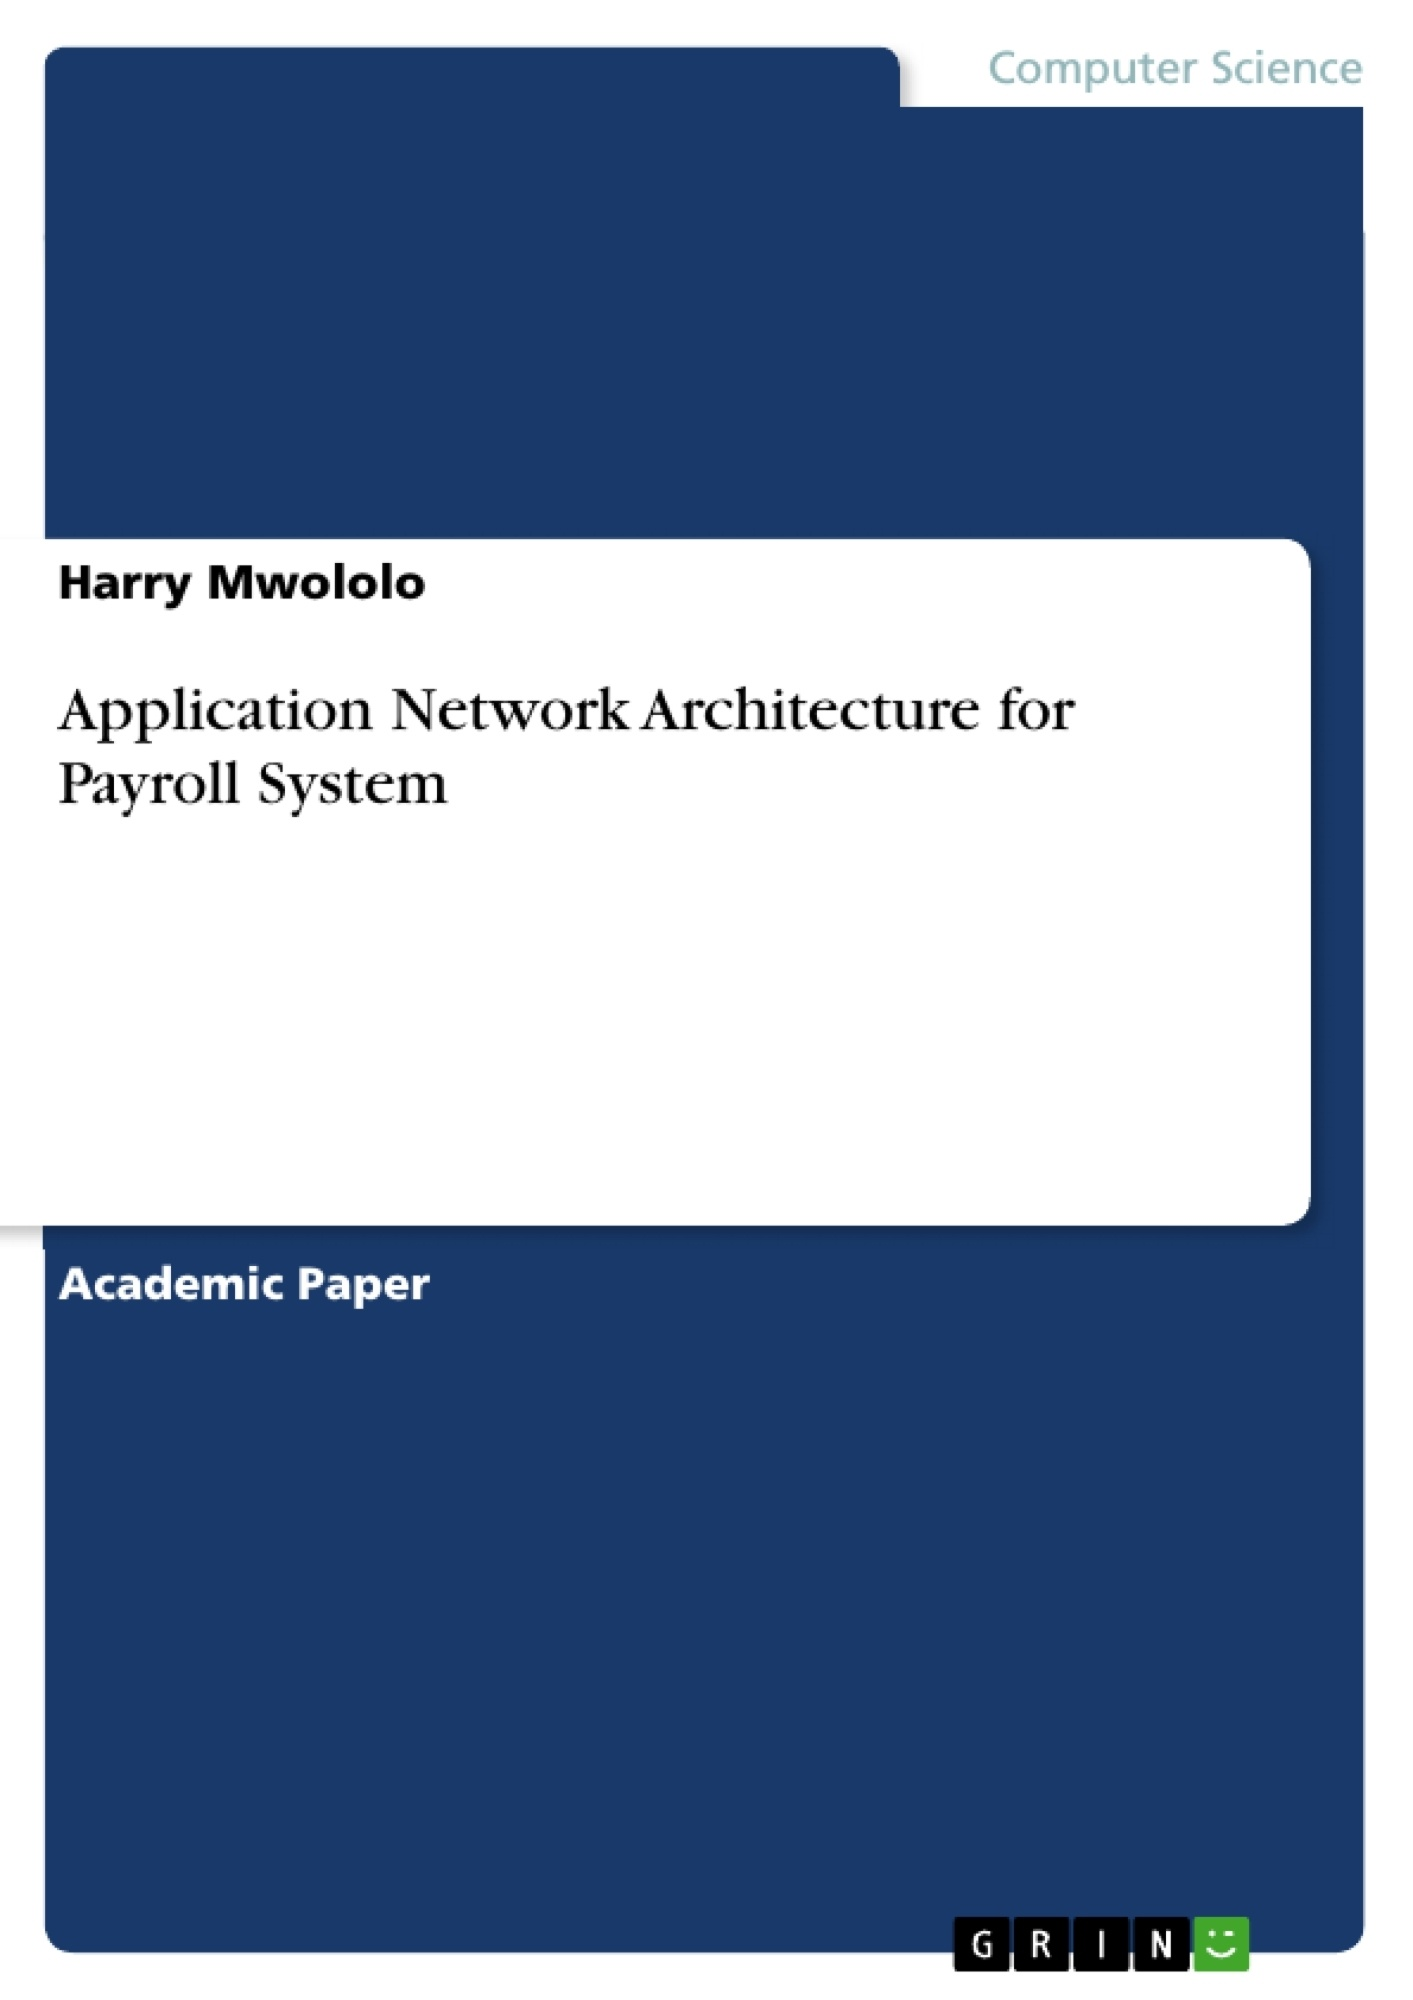 Title: Application Network Architecture for Payroll System